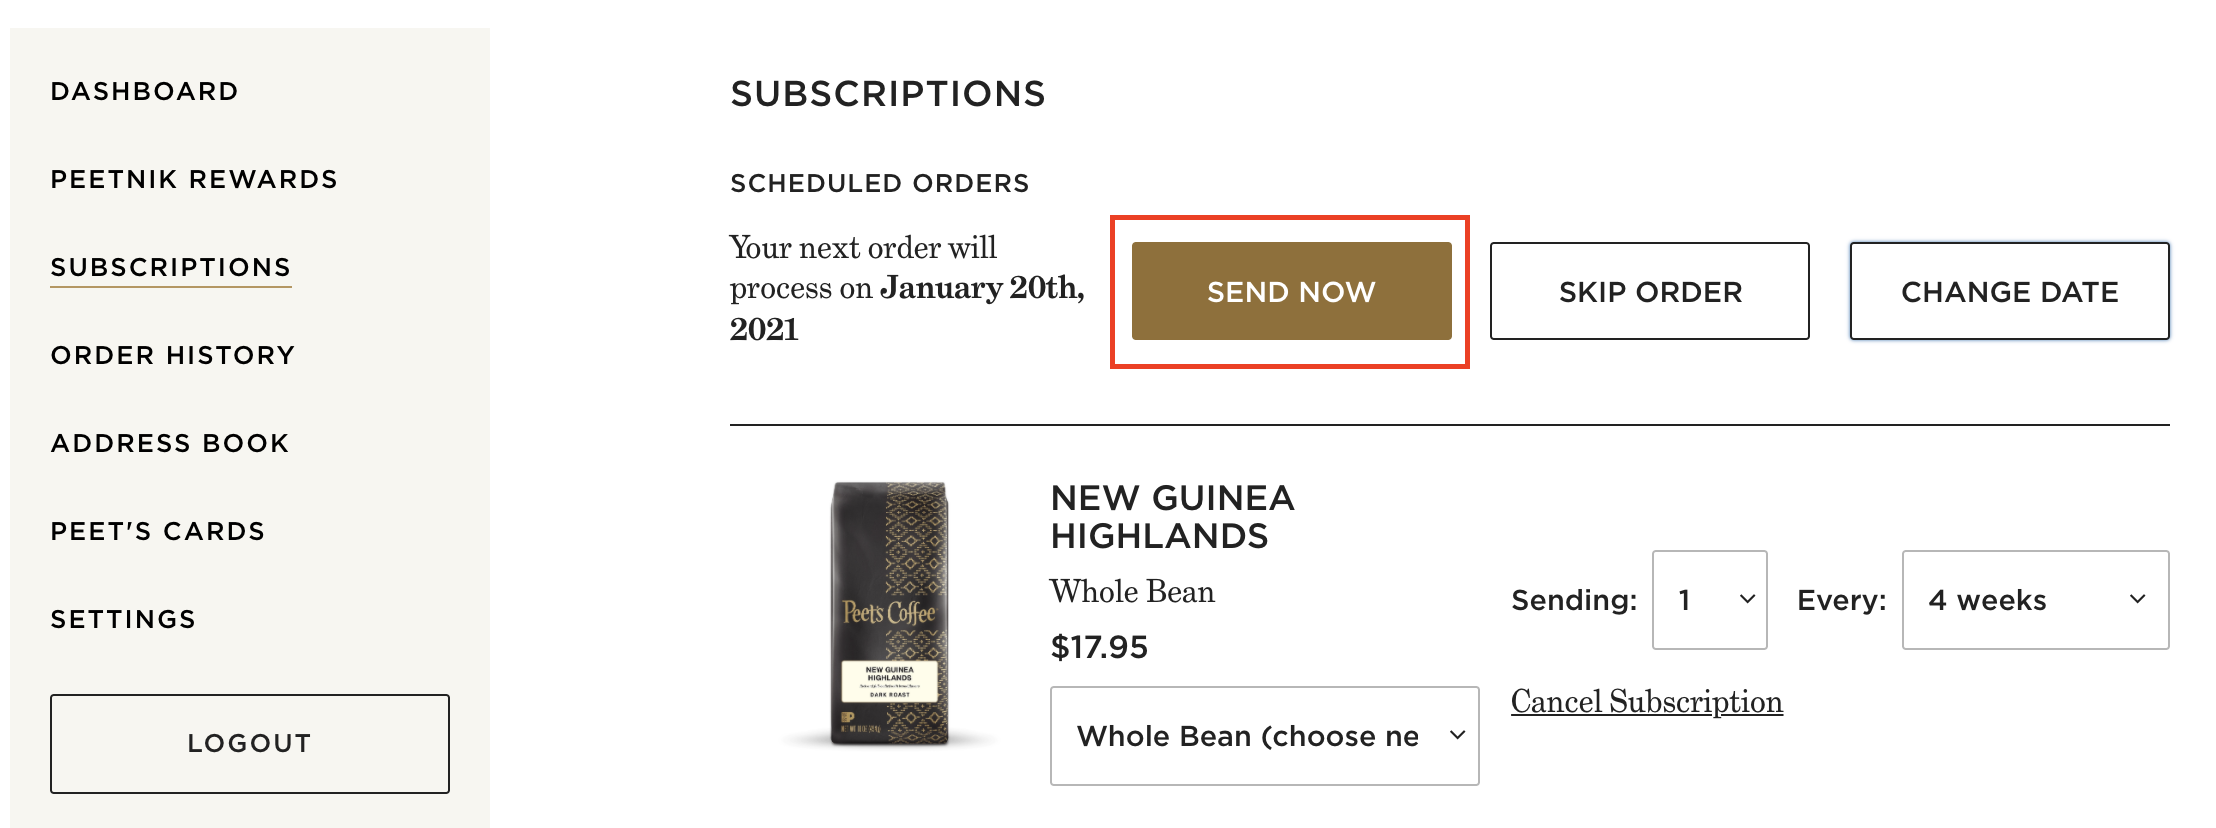 Subscriptions-Send-Now.png